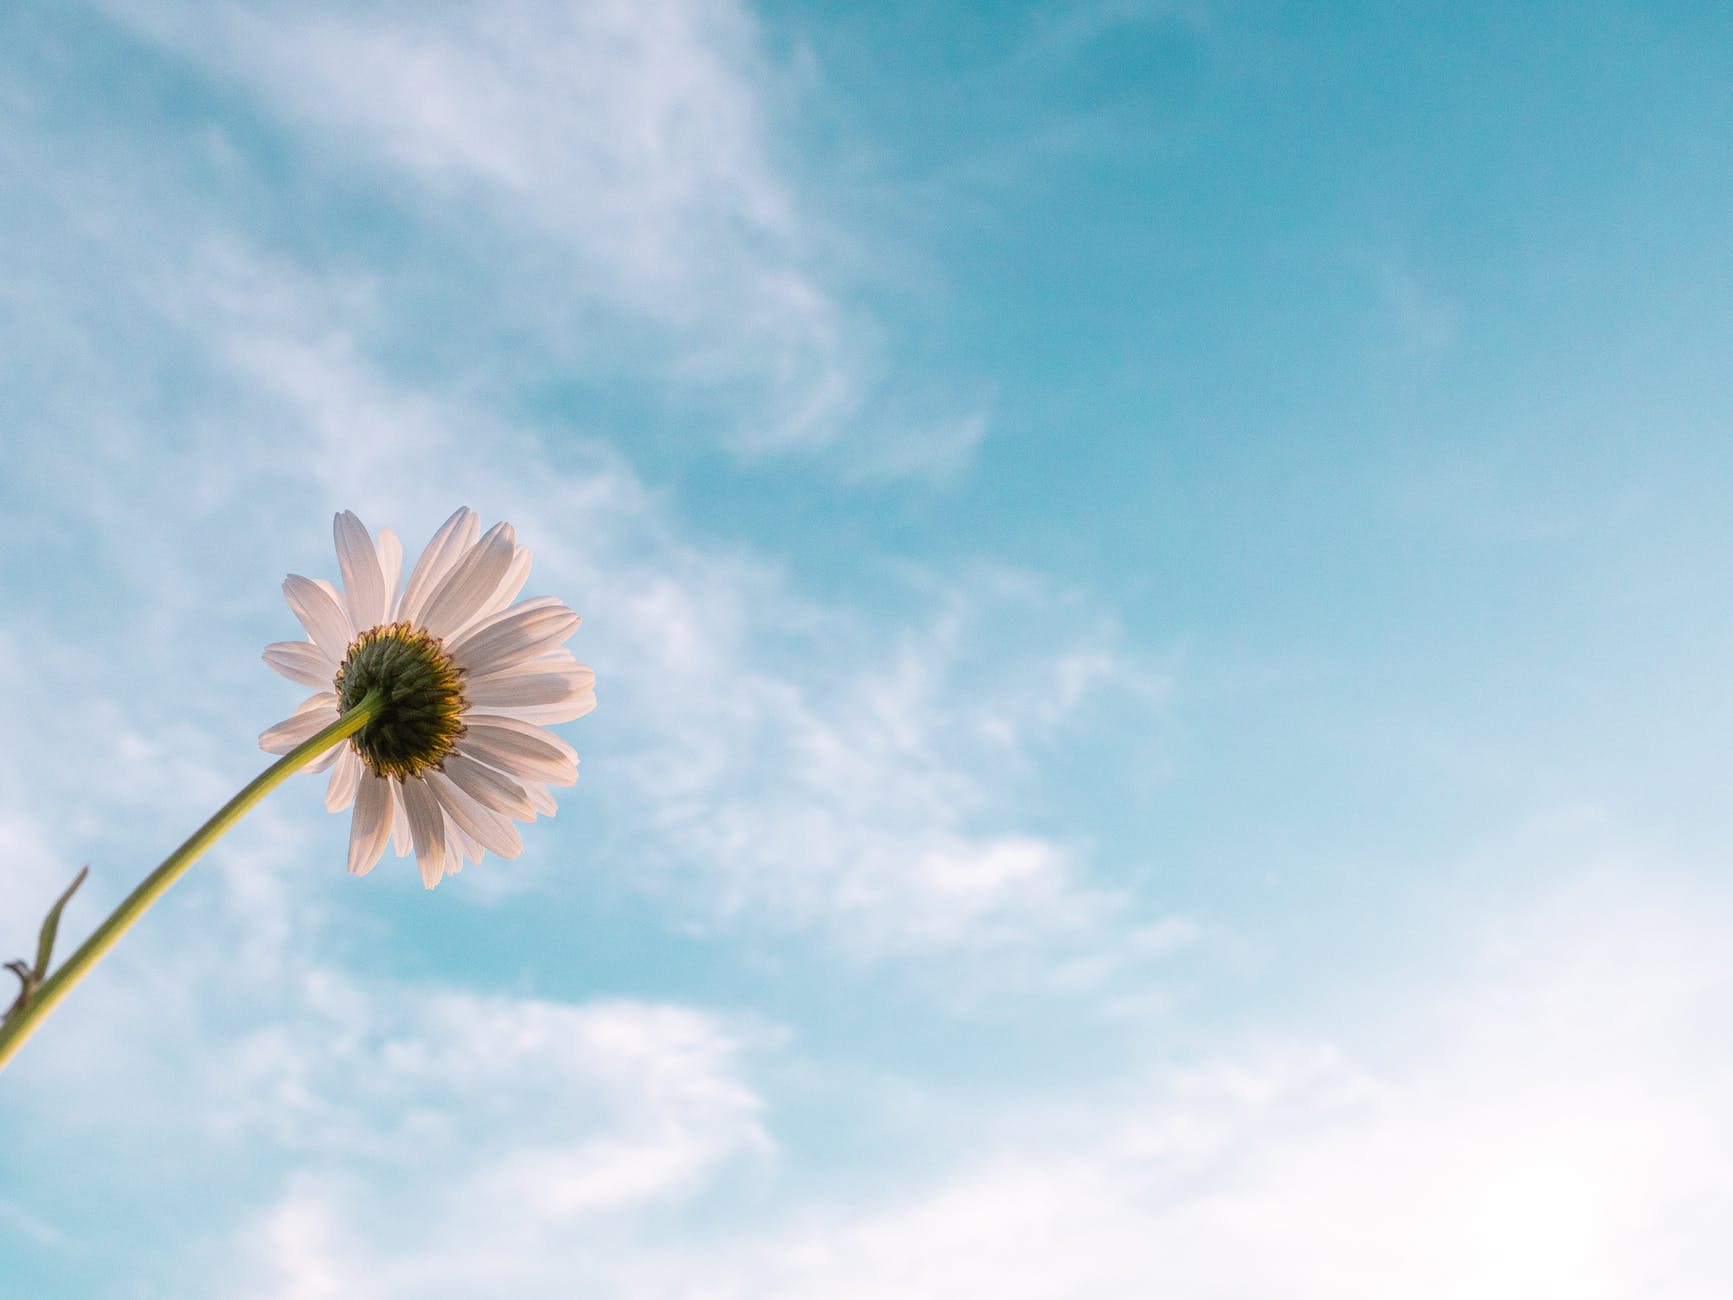 Loss and Hope – an Ascension Sunday reflection